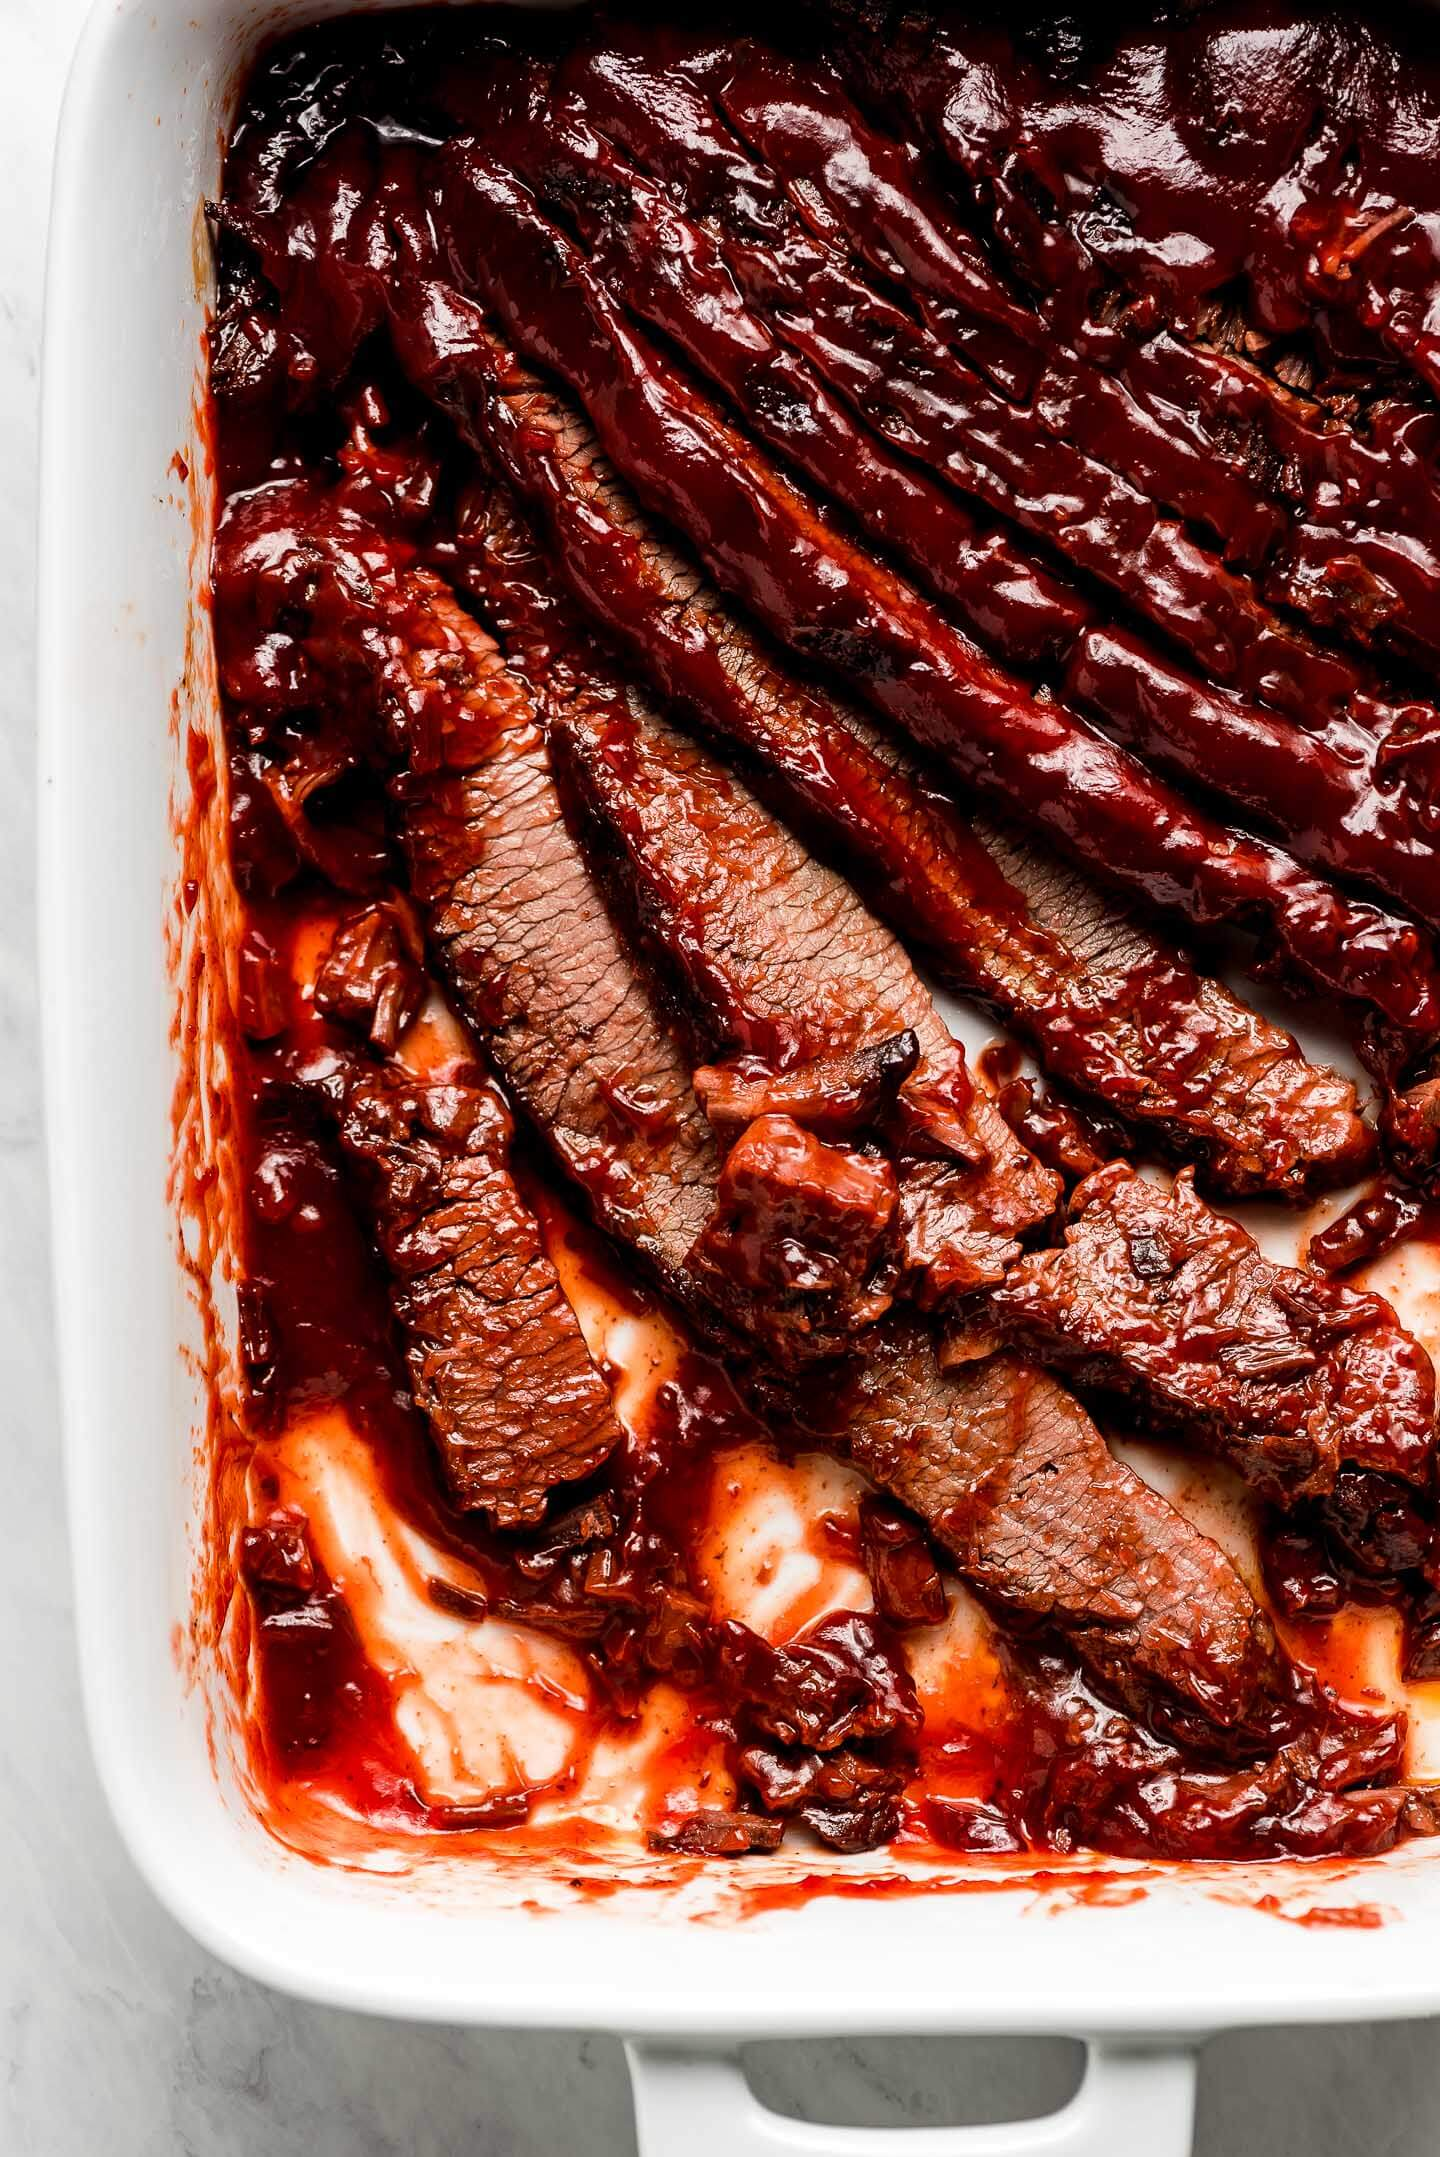 A half empty pan of Brisket made in the oven.